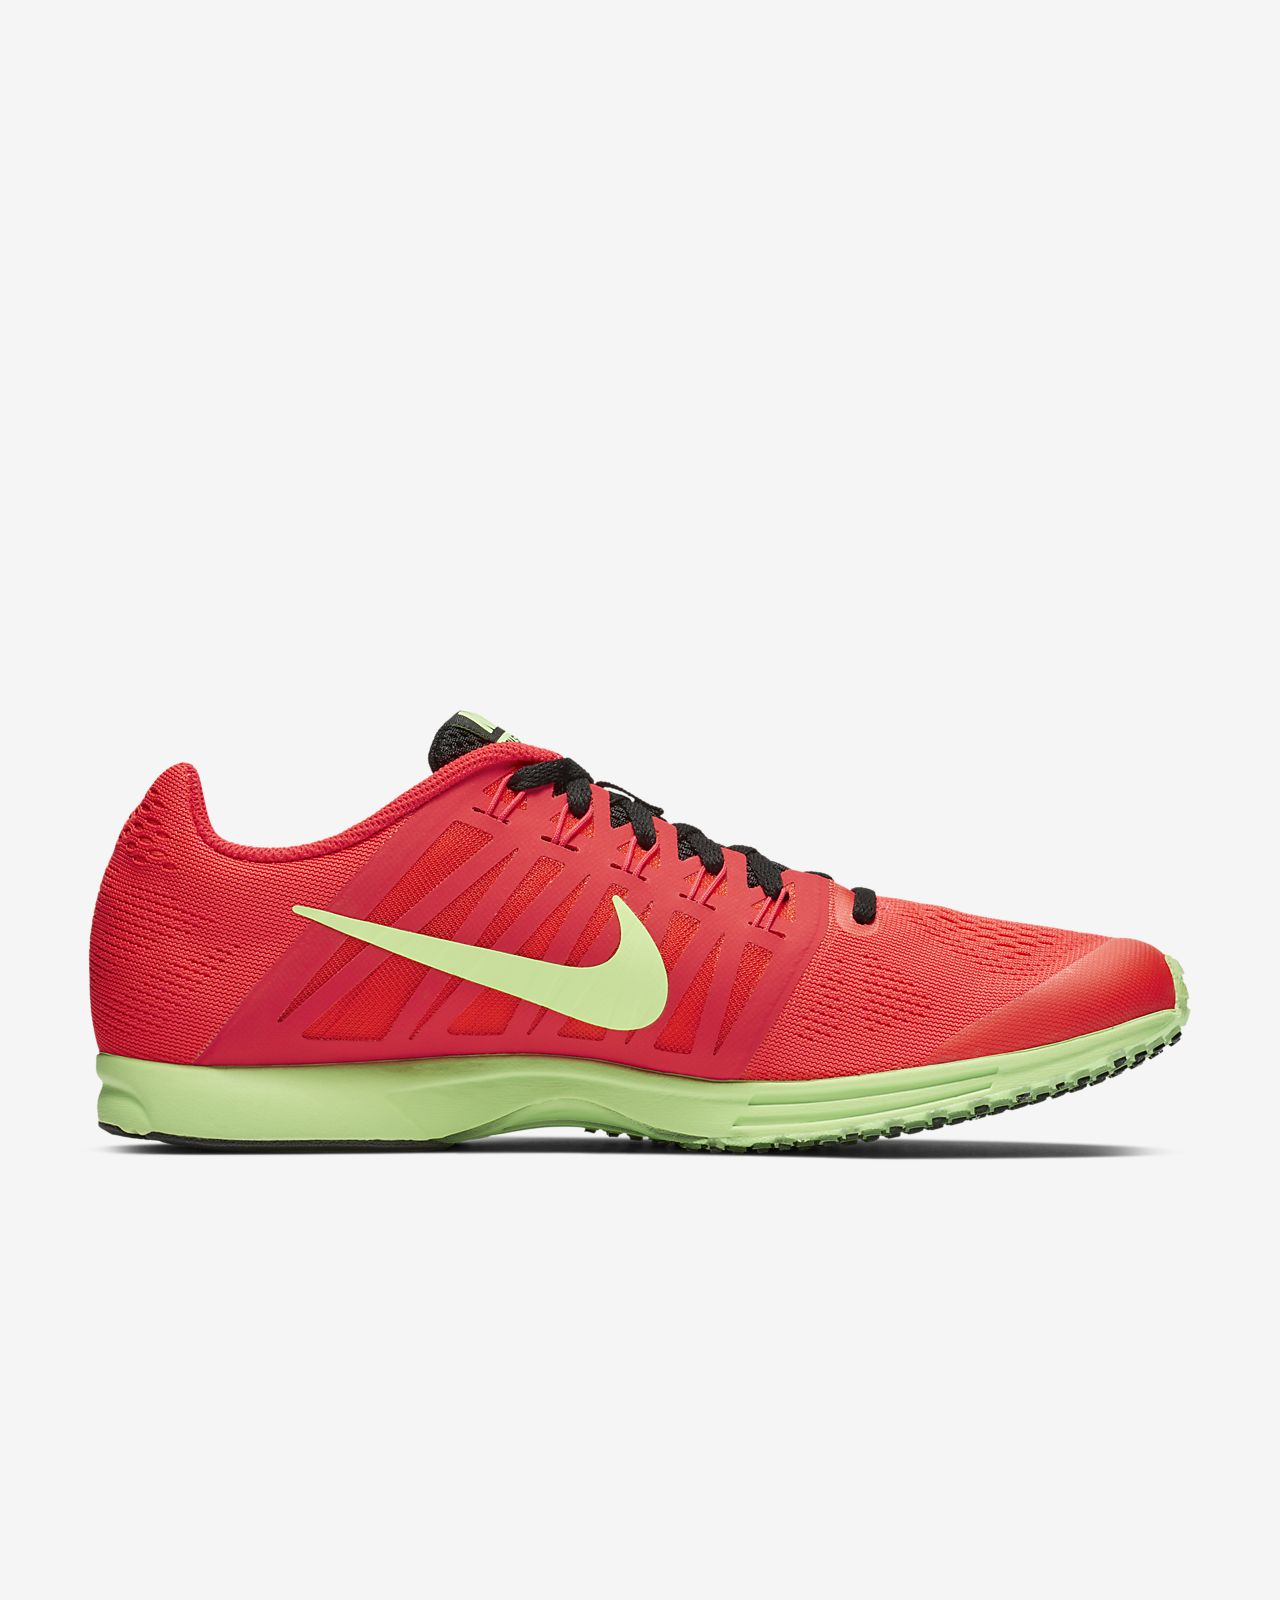 66dba3476a303 Nike Air Zoom Speed Racer 6 Running Shoe. Nike.com